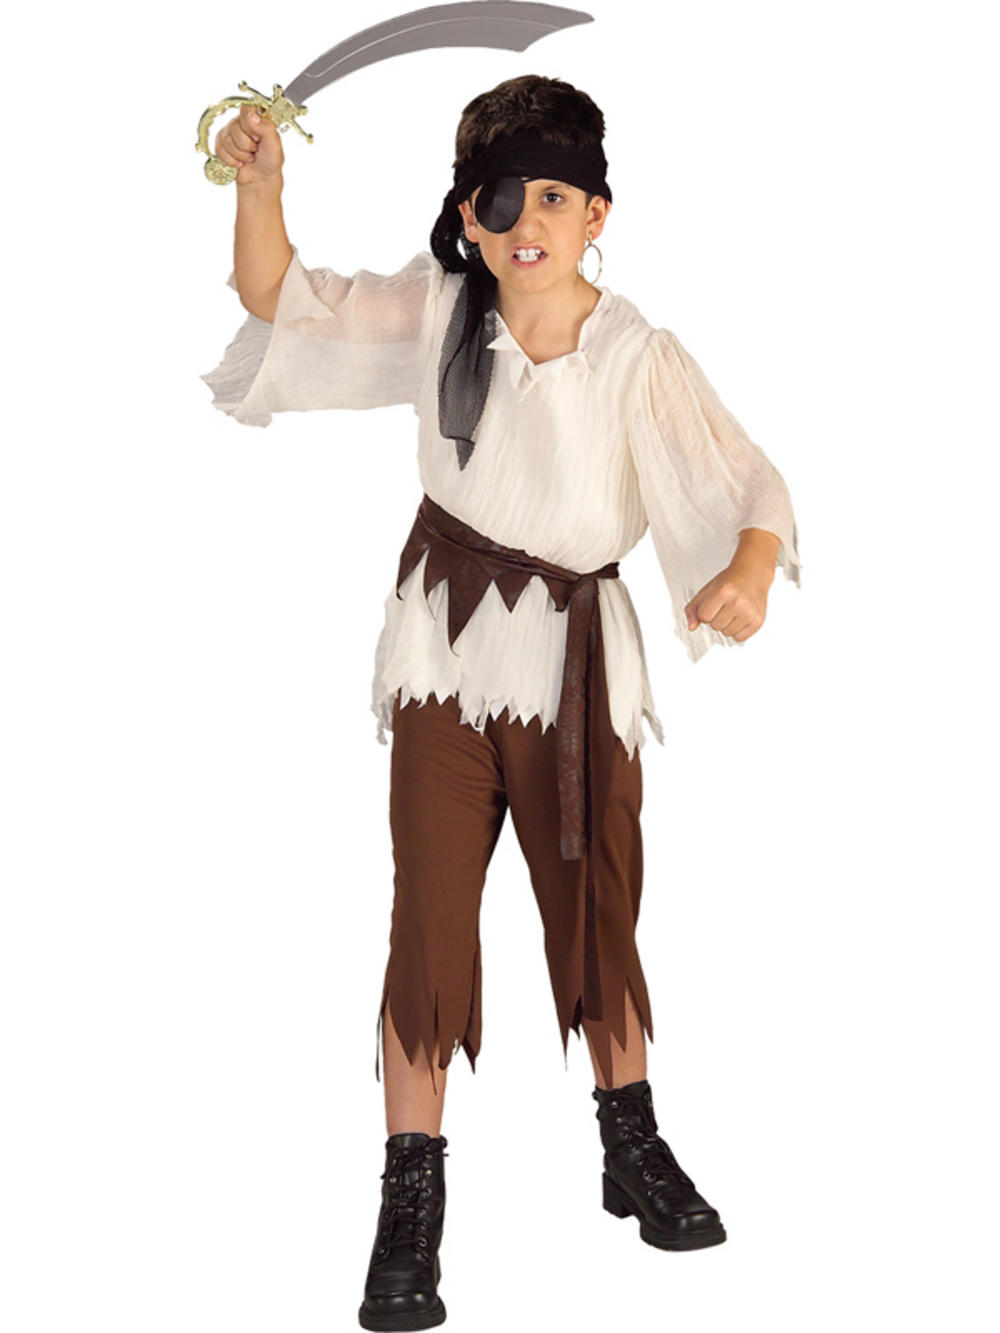 Find and save ideas about Pirate costume kids on Pinterest. | See more ideas about Toddler pirate costumes, Childrens pirate costume and Pirate party costume. Holidays and events Pirate Party, Fancy Dress More.